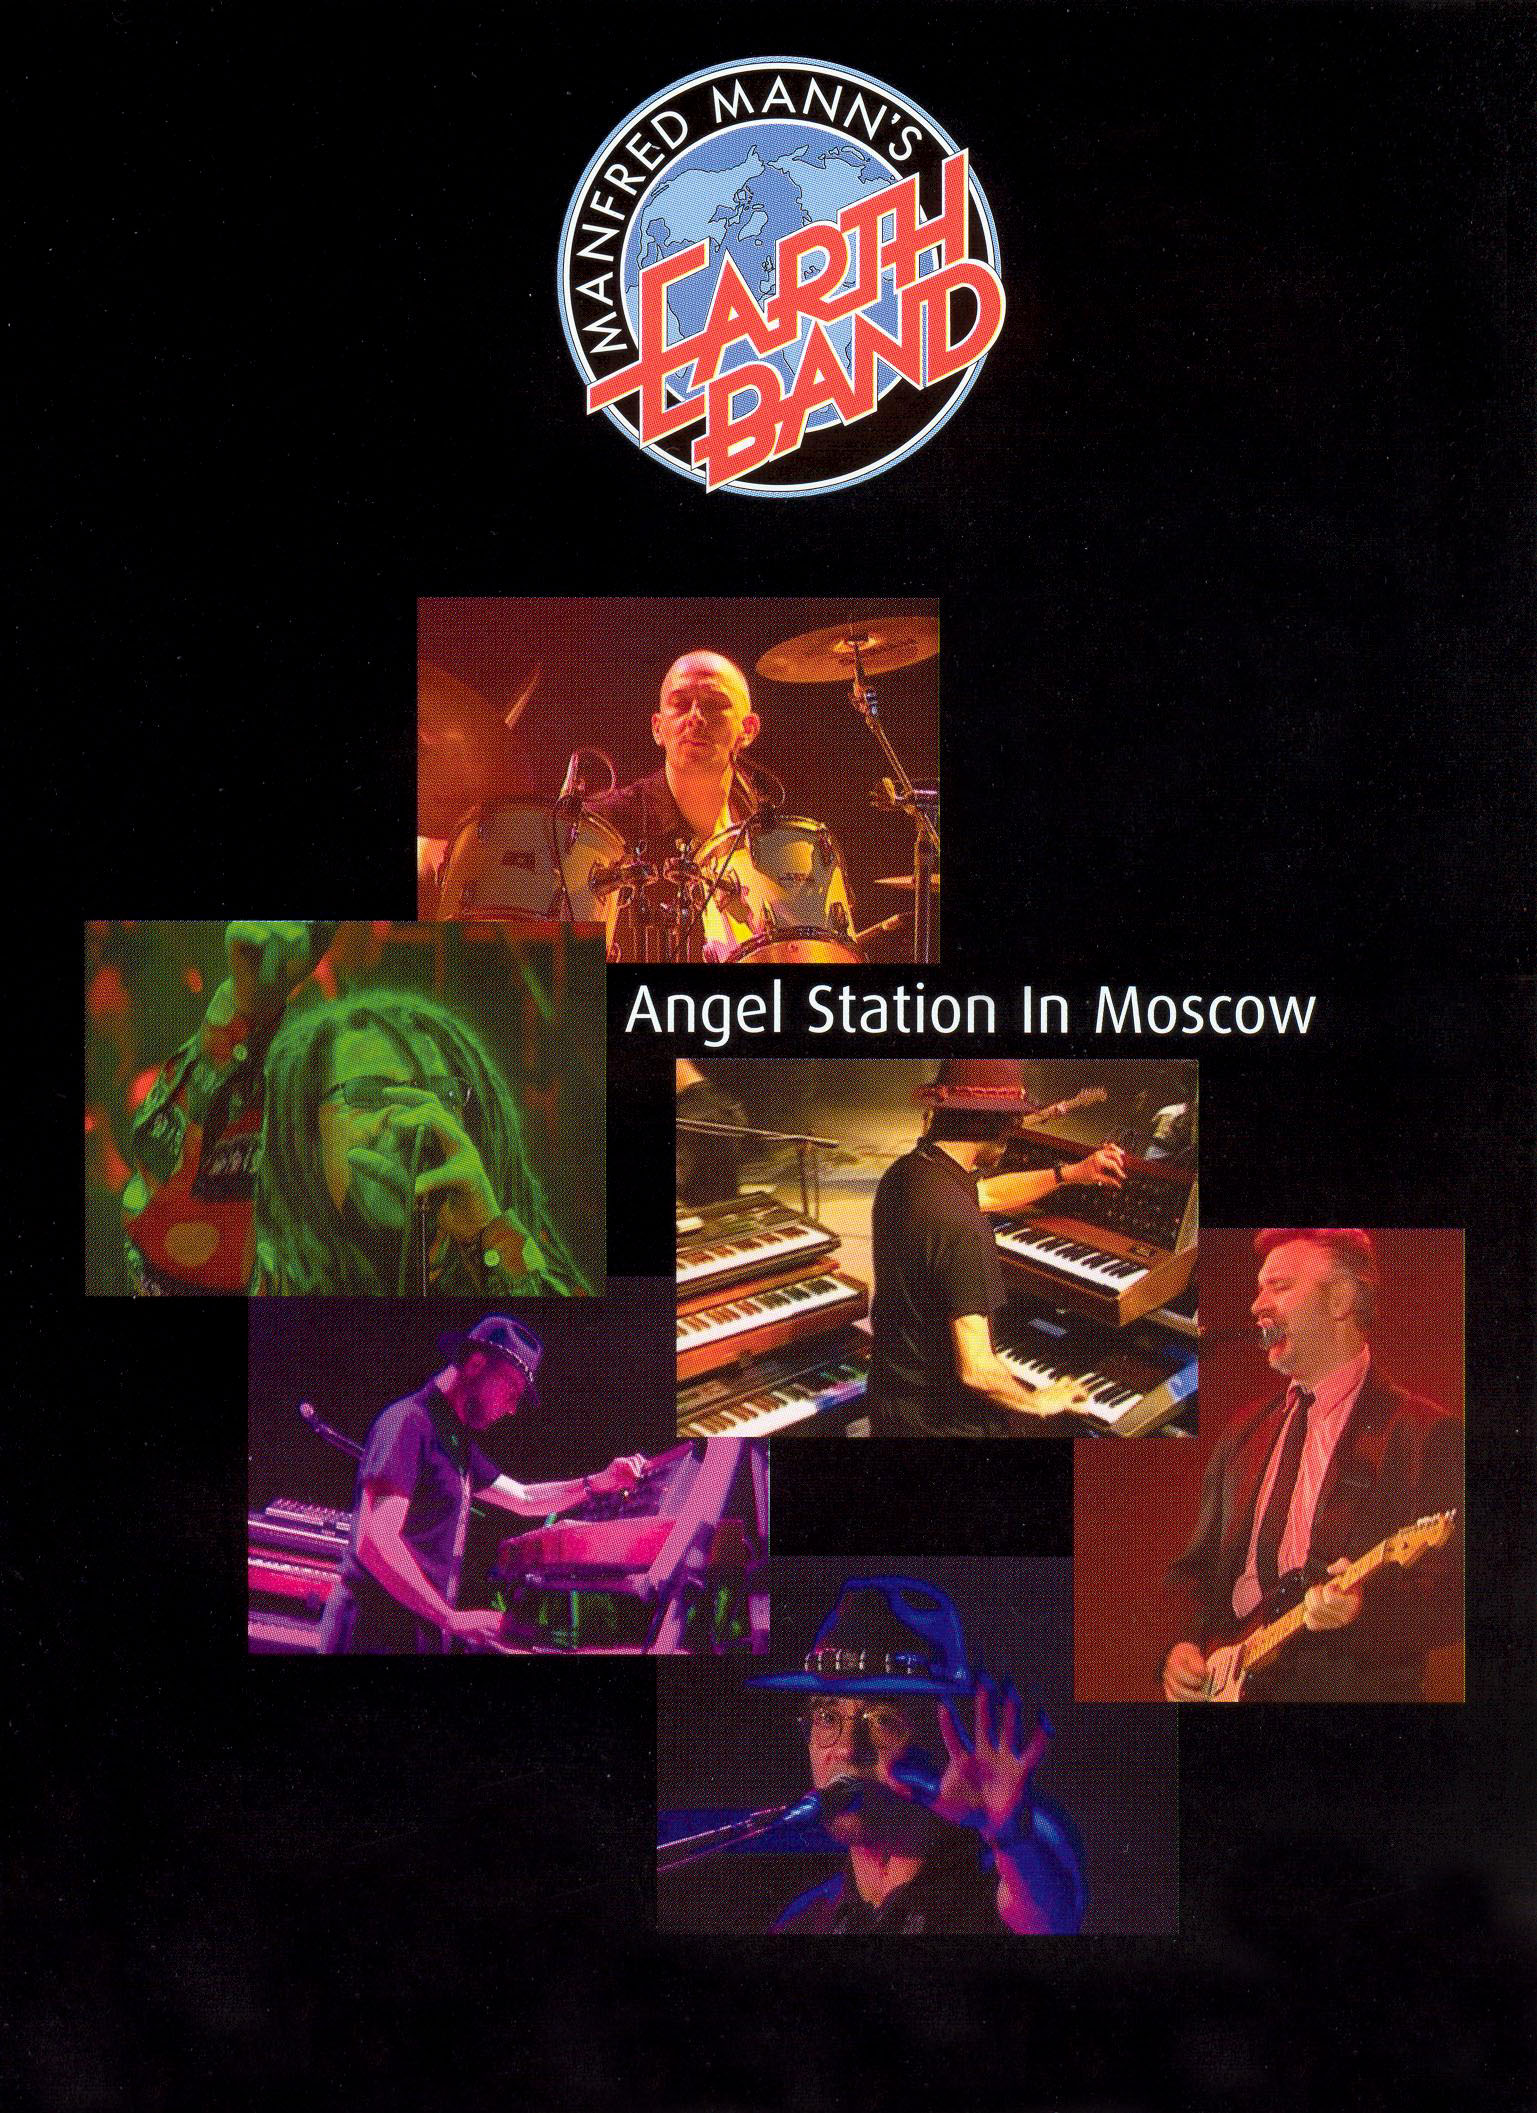 Manfred Mann's Earth Band: Angel Station In Moscow Live In Concert